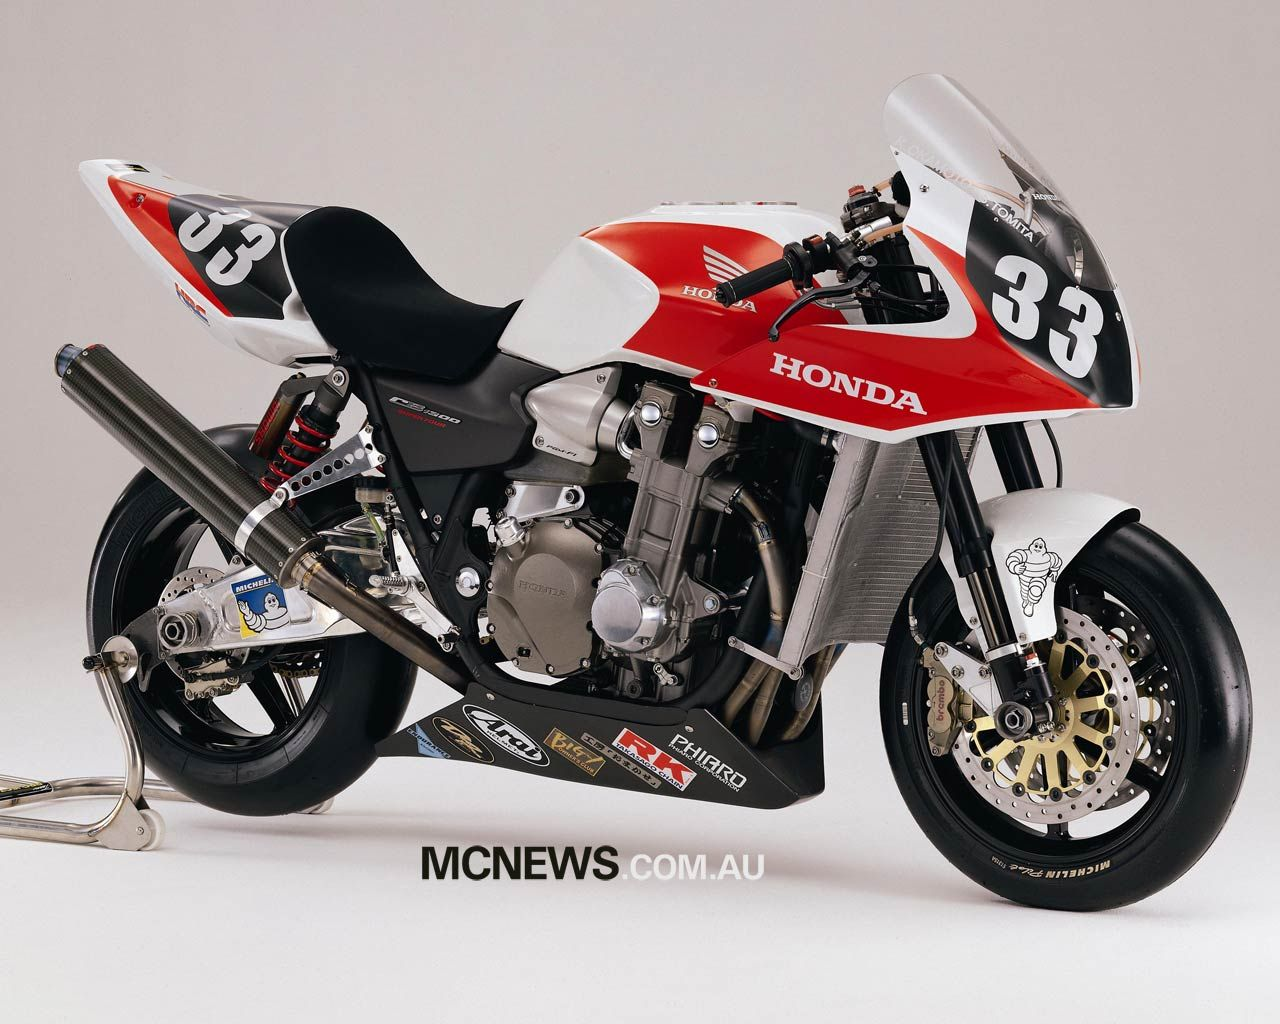 Cb1300 Racer Now It Looks The Biz Motorcycling